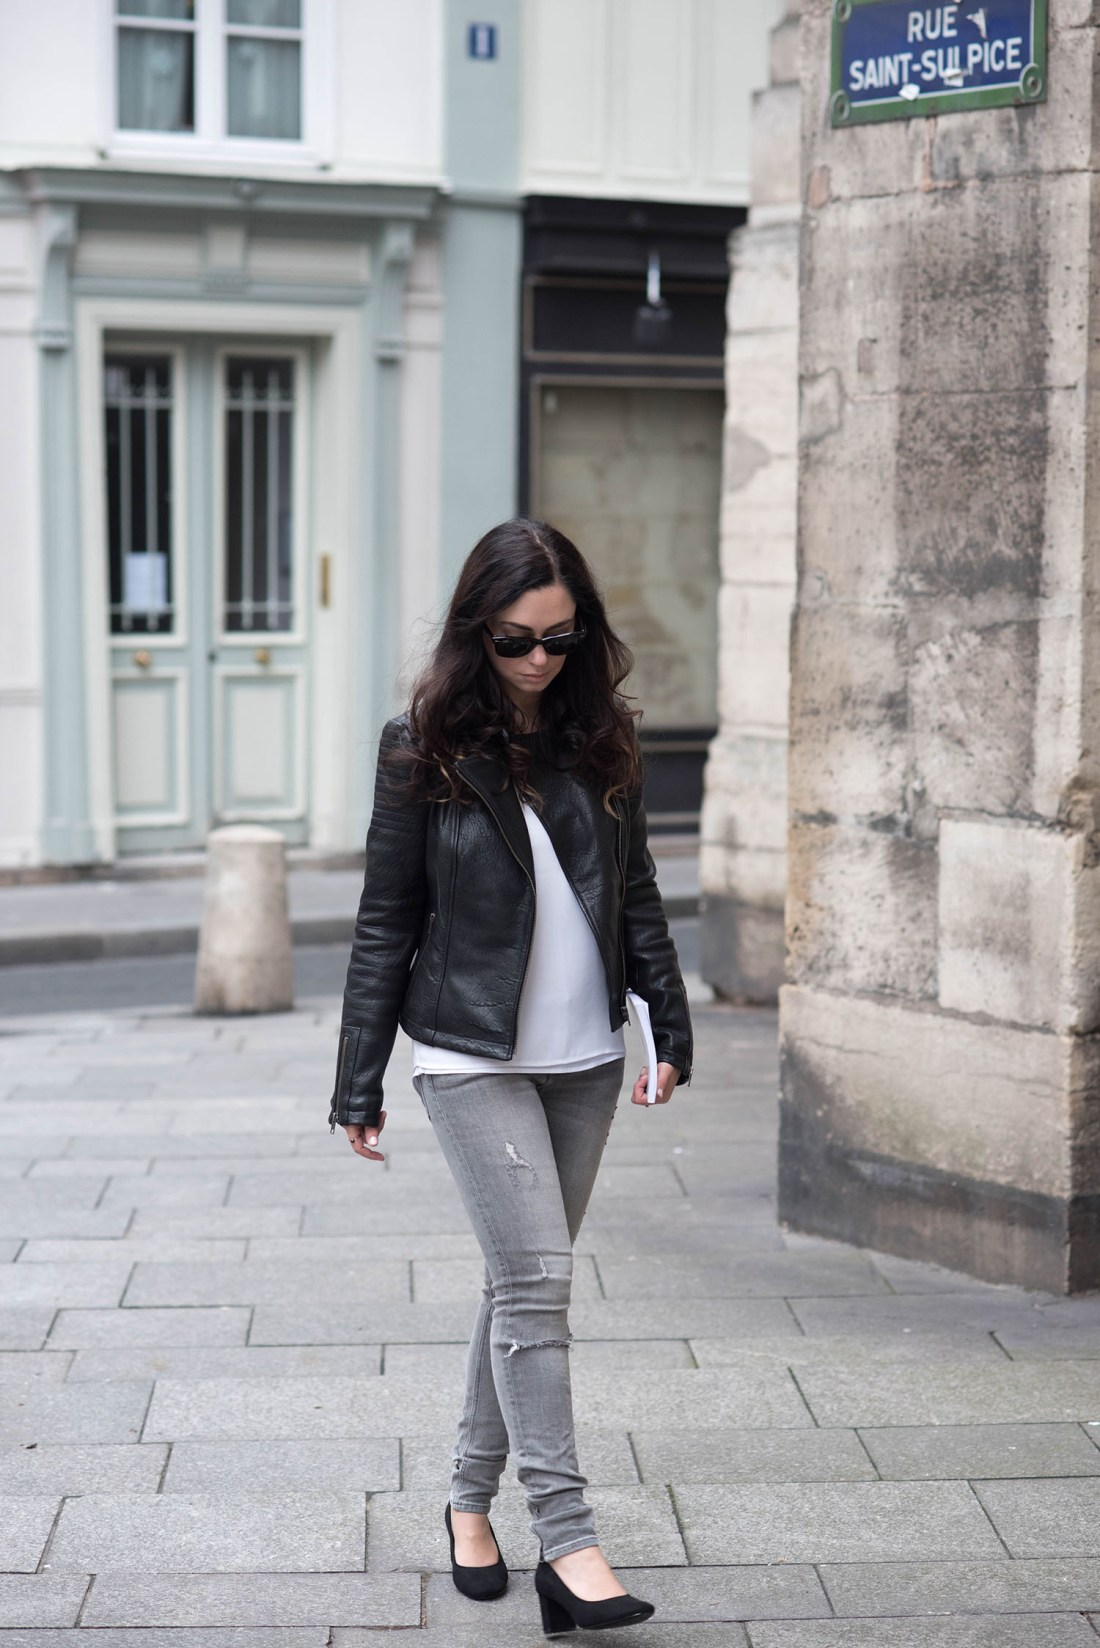 Lifestyle blogger Cee Fardoe of Coco & Vera walks in Paris wearing a leather jacket and Express Barcelona tank